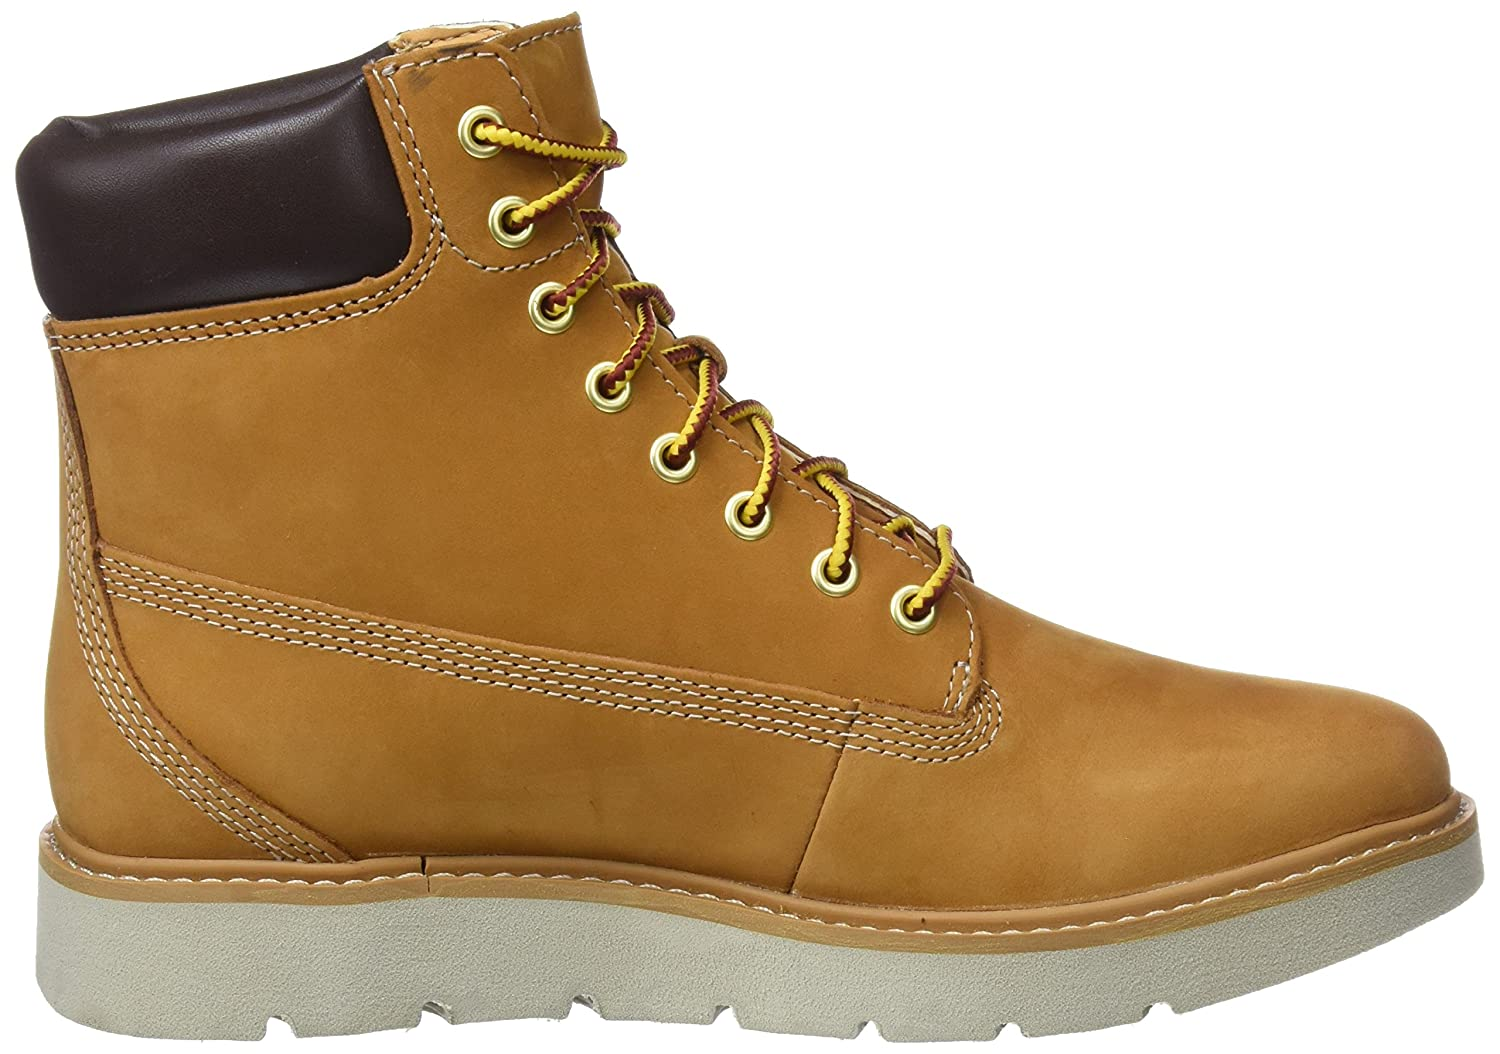 Kenniston inch Femme Botines Timberland Sacs Lace et Wide 6 Fit Chaussures Up E8w4xdw